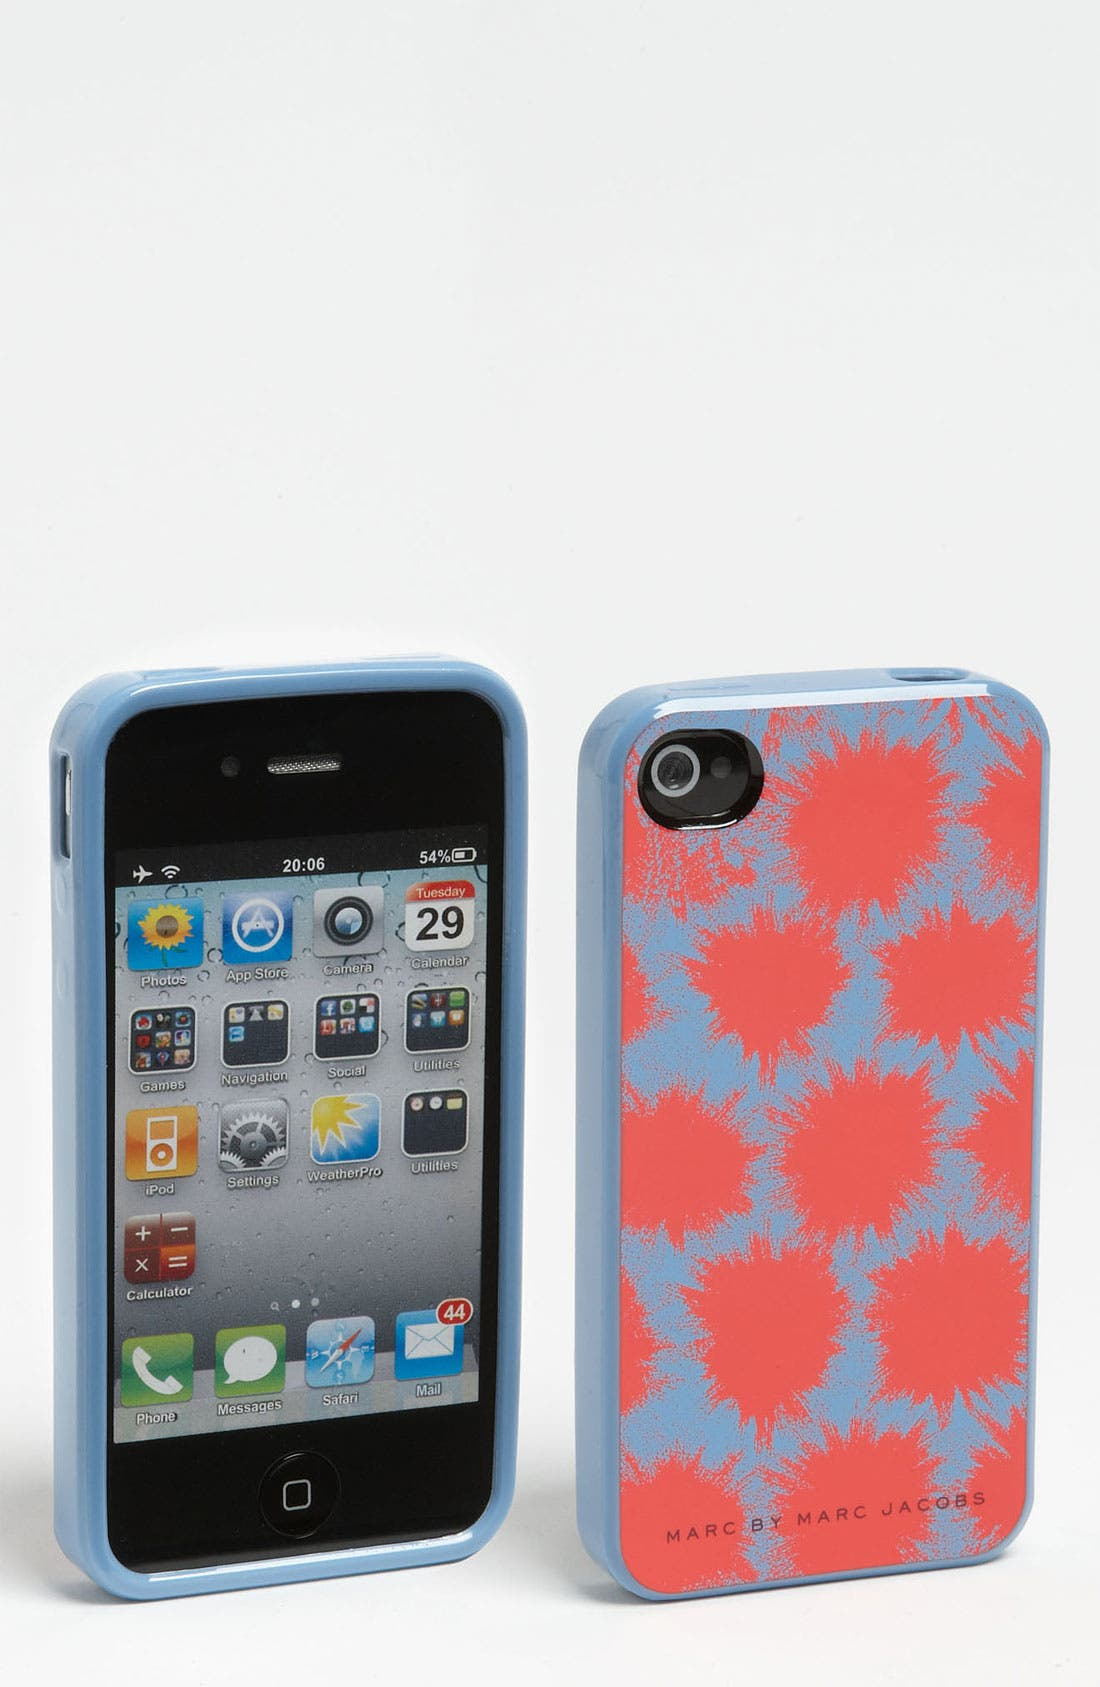 Main Image - MARC BY MARC JACOBS 'Sparks' iPhone 4 & 4S Case